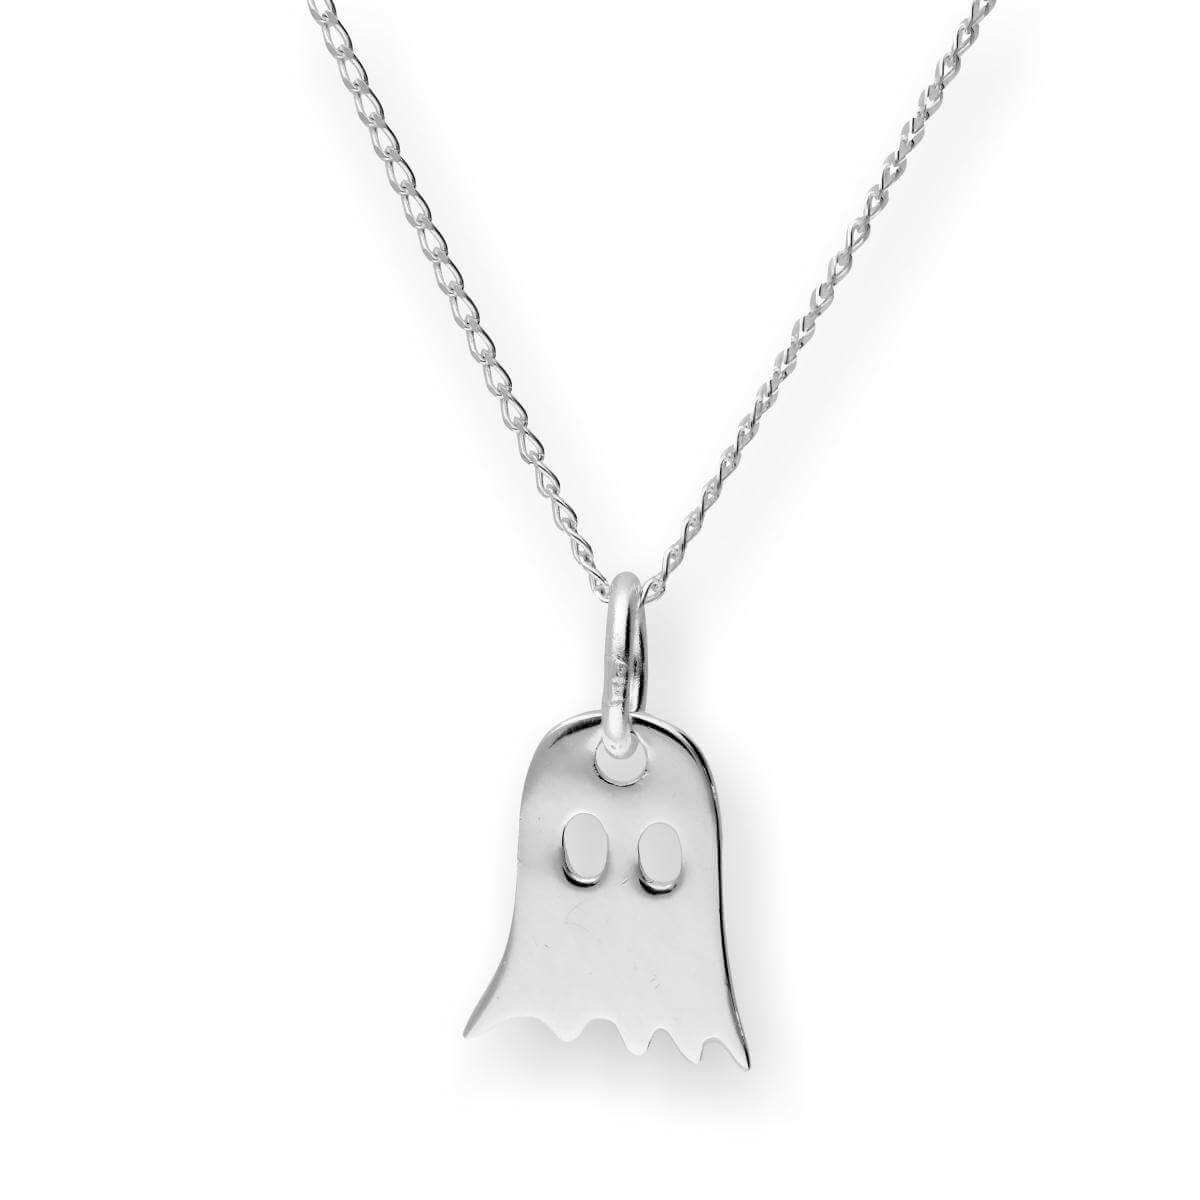 Sterling Silver Ghost Pendant Necklace 14 - 22 Inches